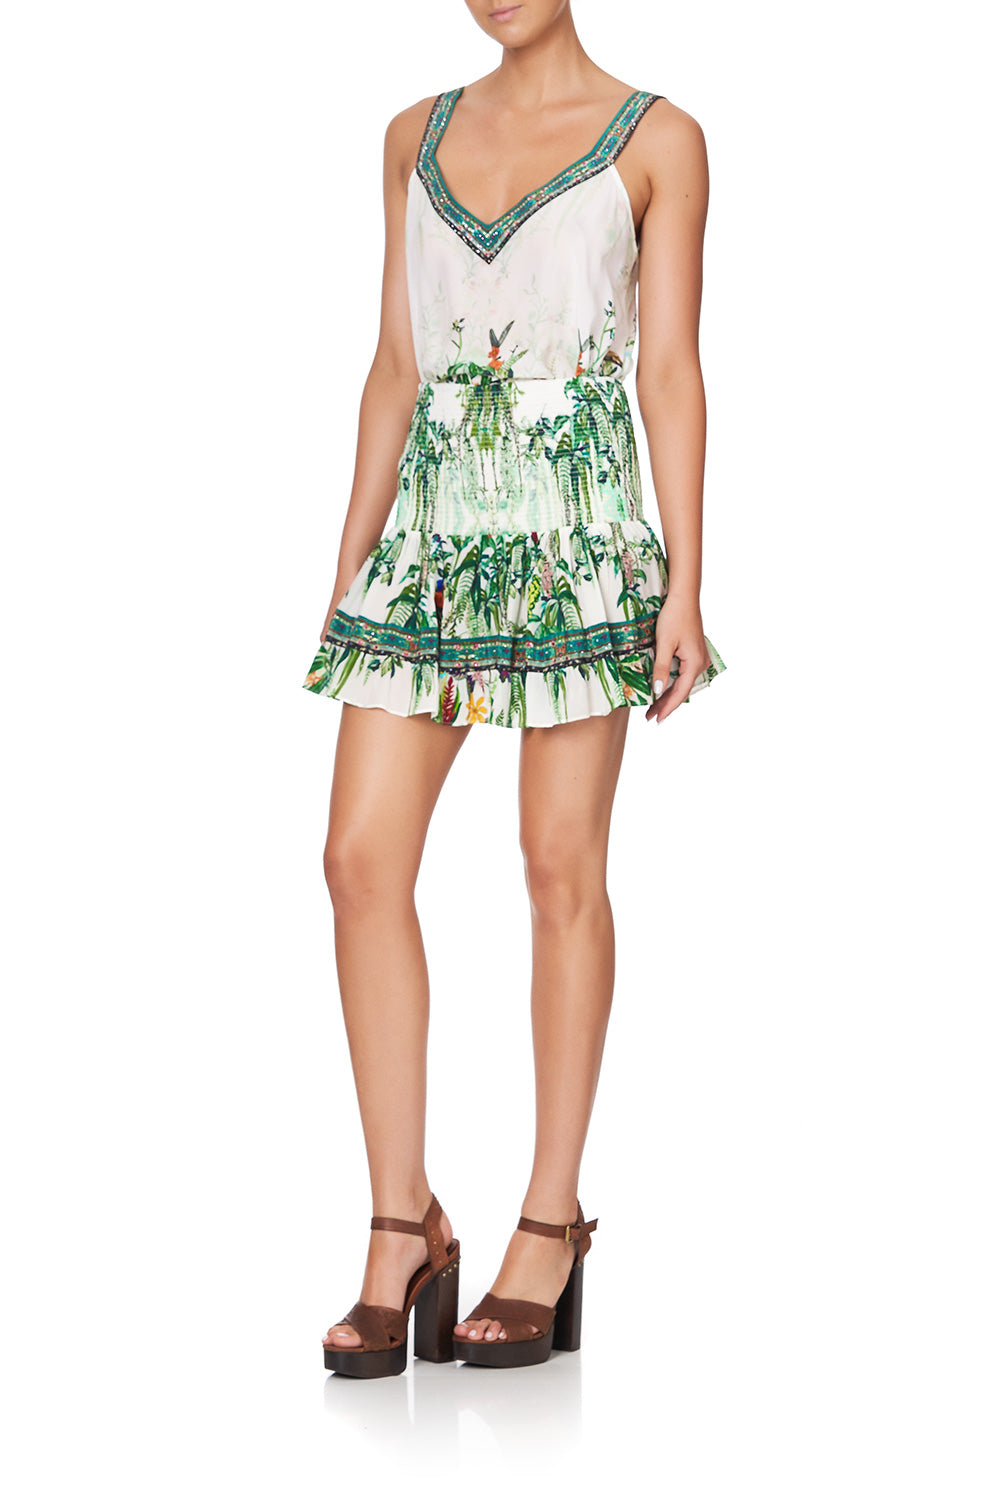 SHORT SHIRRED SKIRT DAINTREE DARLING